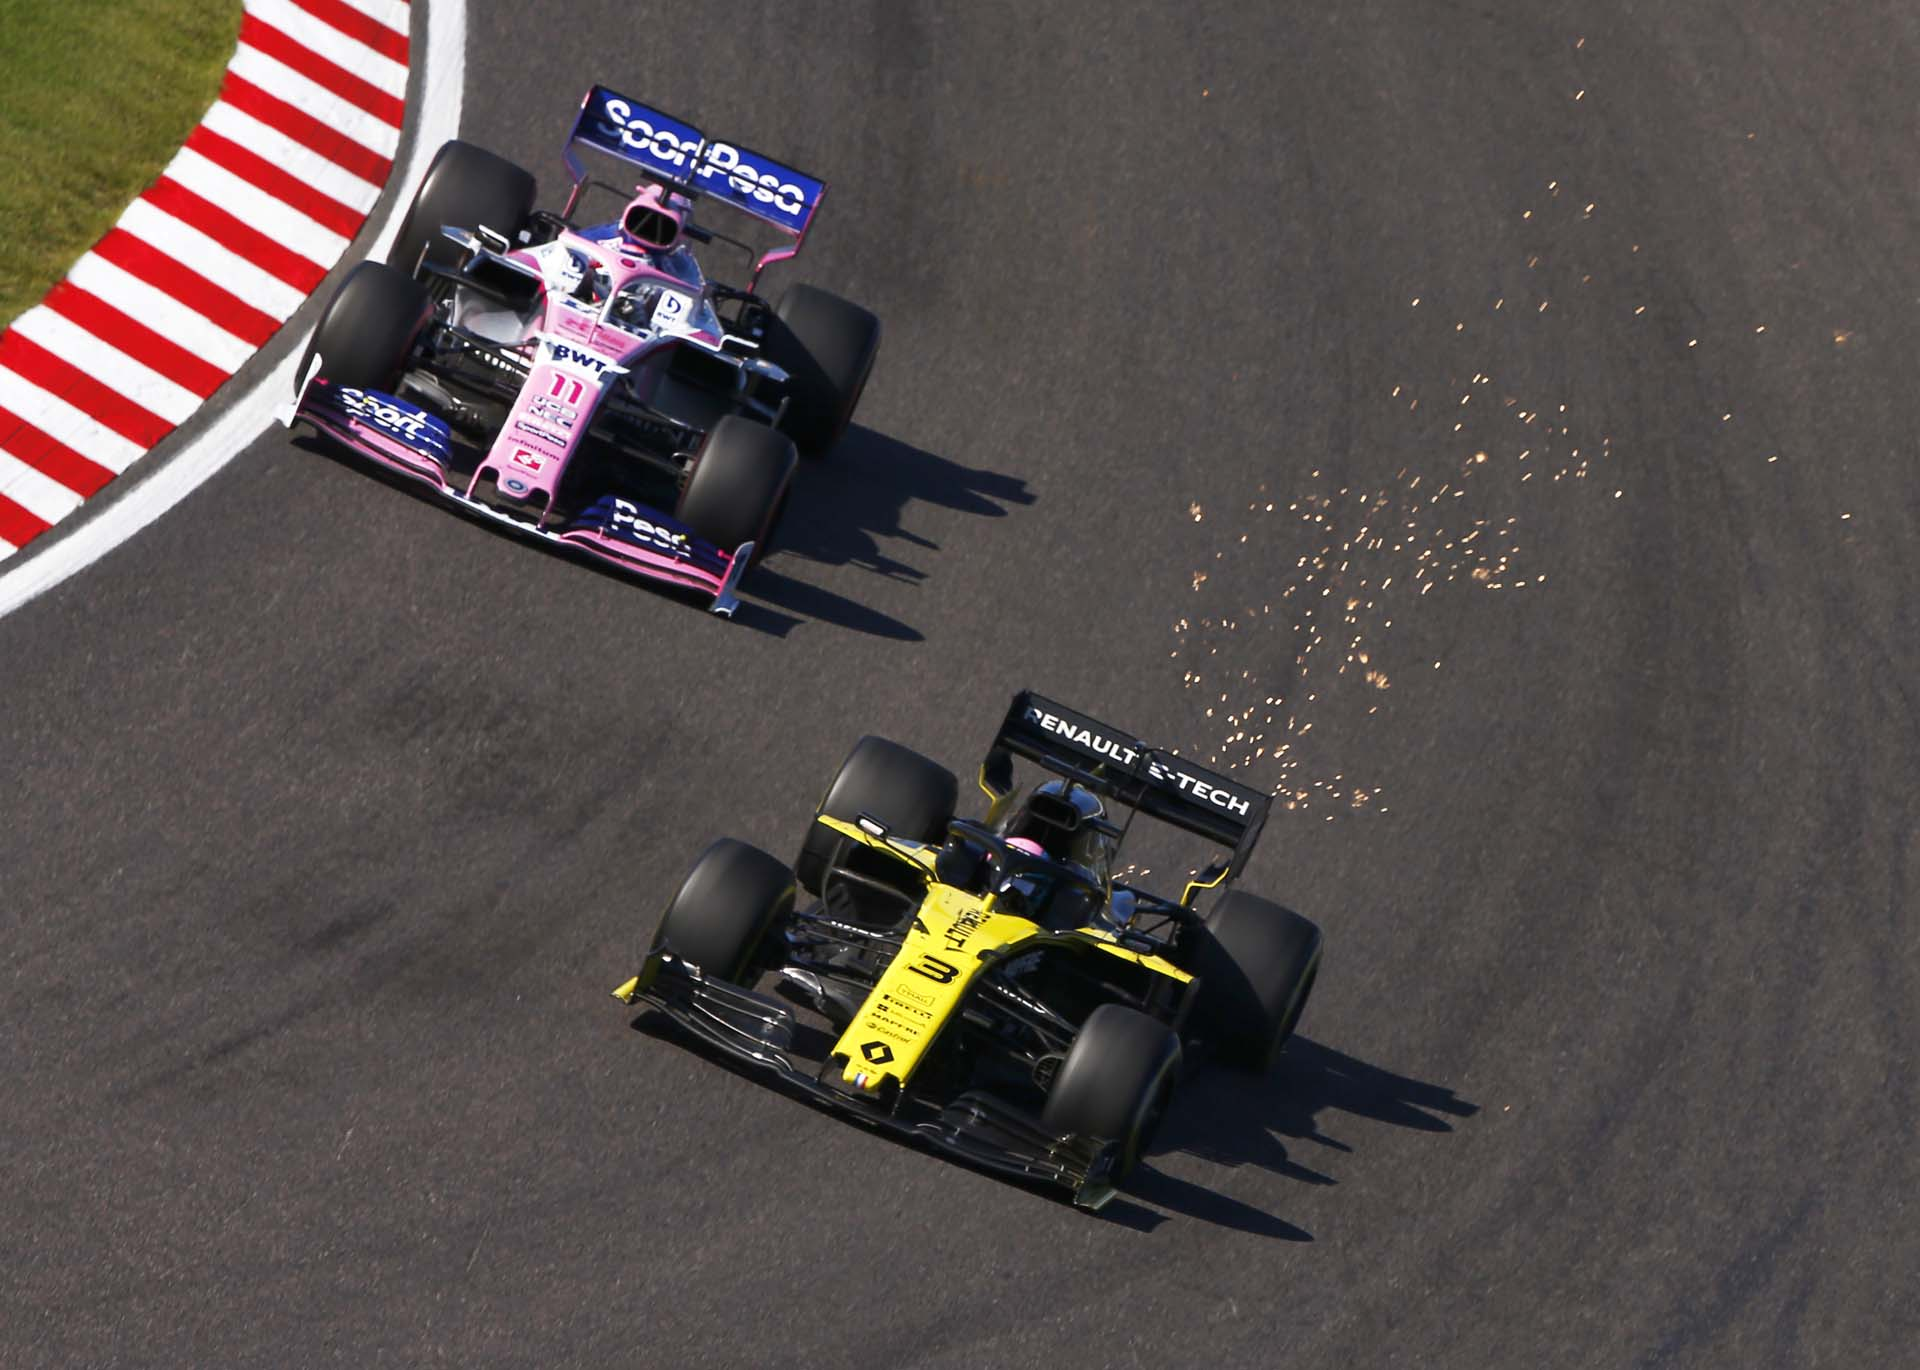 Daniel Ricciardo, Renault R.S.19 and Sergio Perez, Racing Point RP19